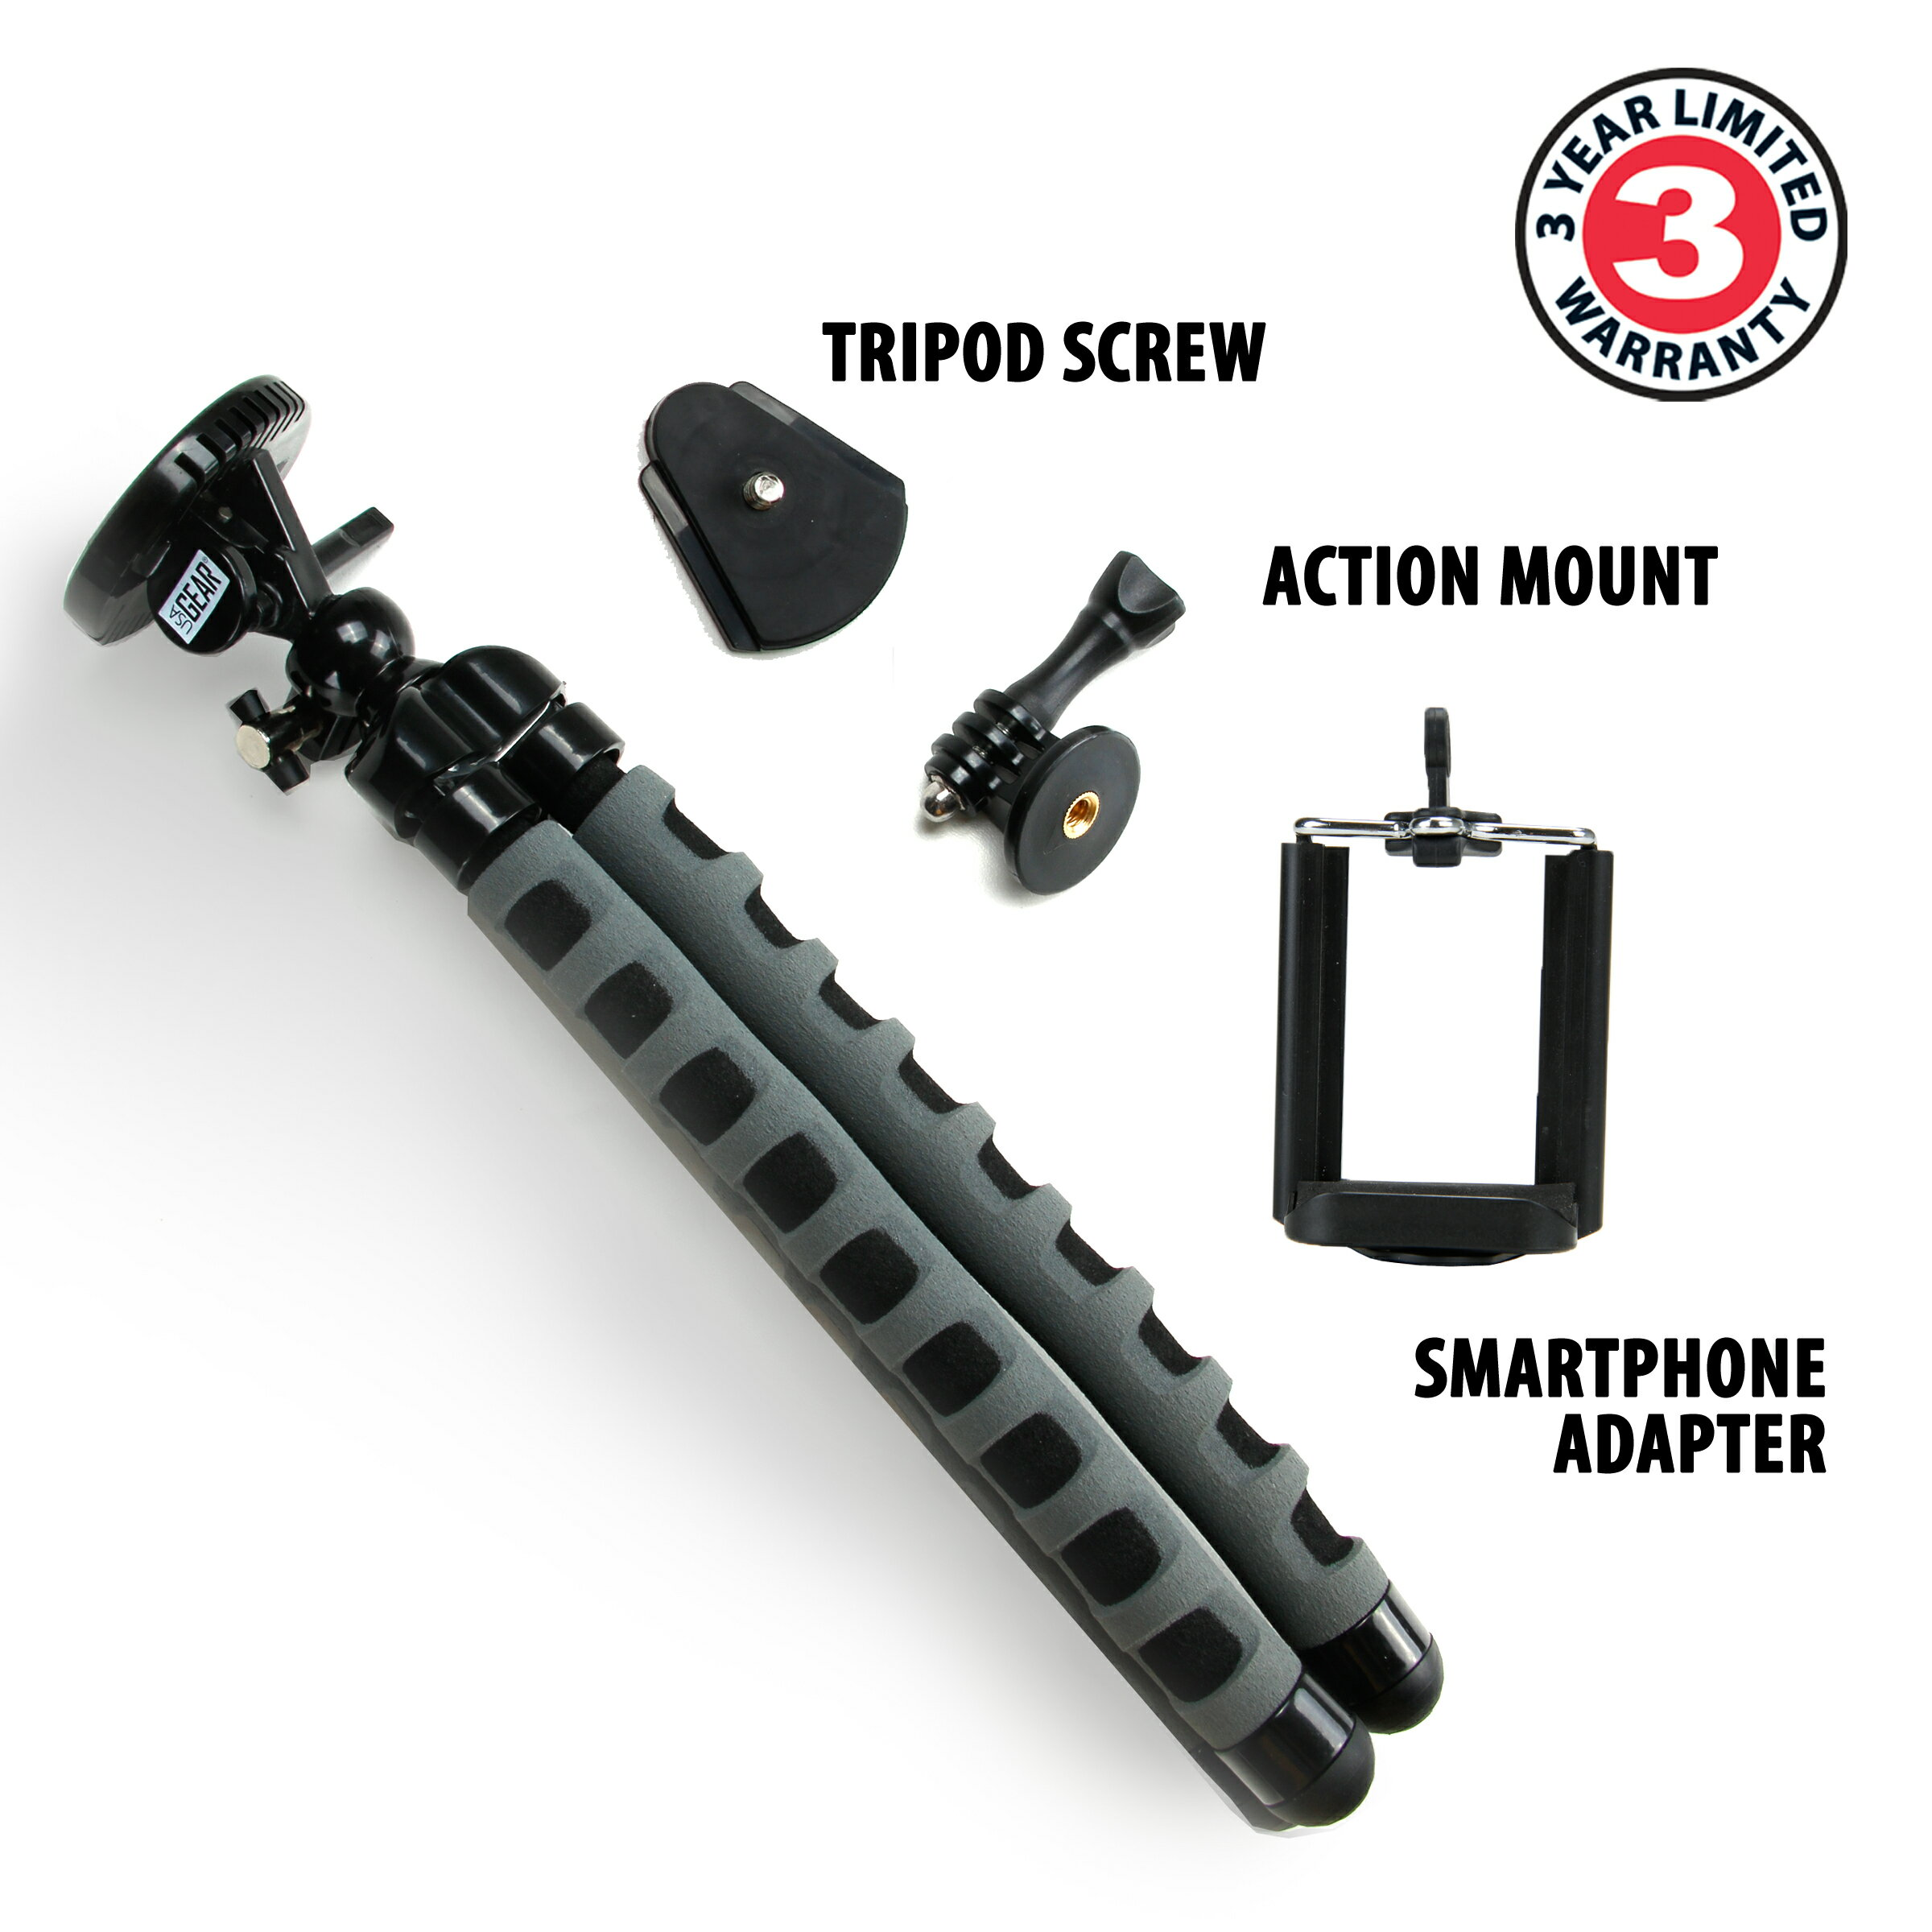 USA GEAR Flexible Tripod with 360-Degree Rotating Mount, Smartphone Adapter and Quick-Release Plate 1